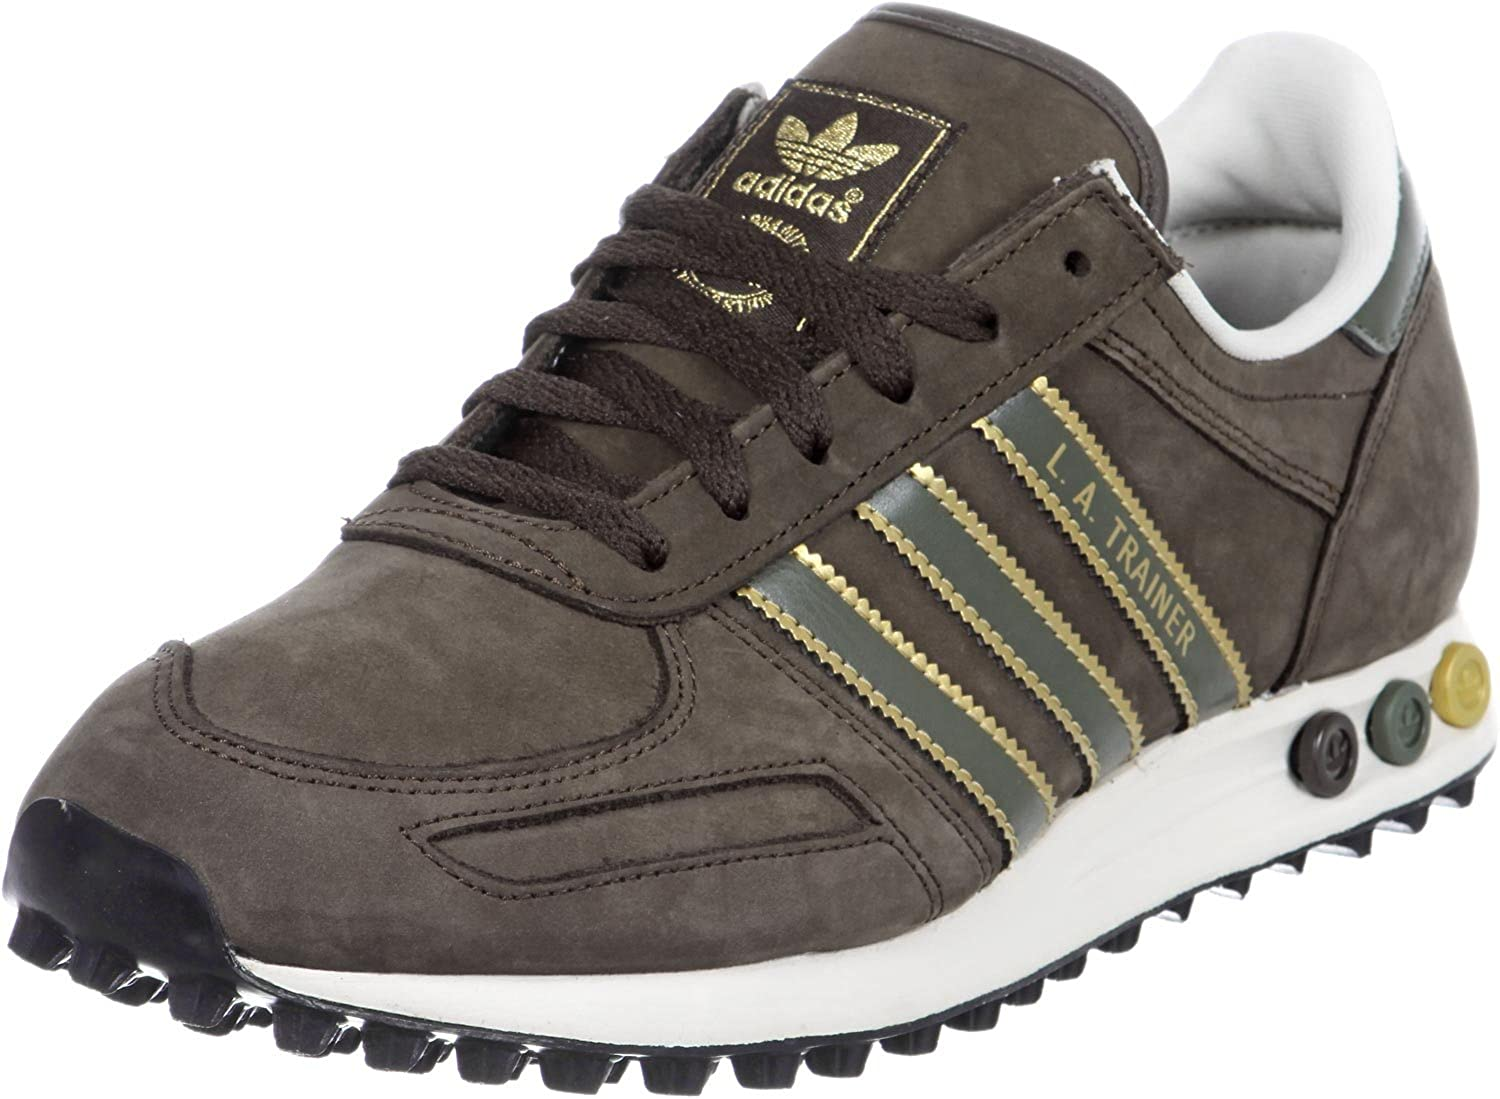 Email Más allá patio de recreo  Adidas Running Shoes La Trainer Musbro Brown Size: 7 UK: Amazon.co.uk:  Shoes & Bags